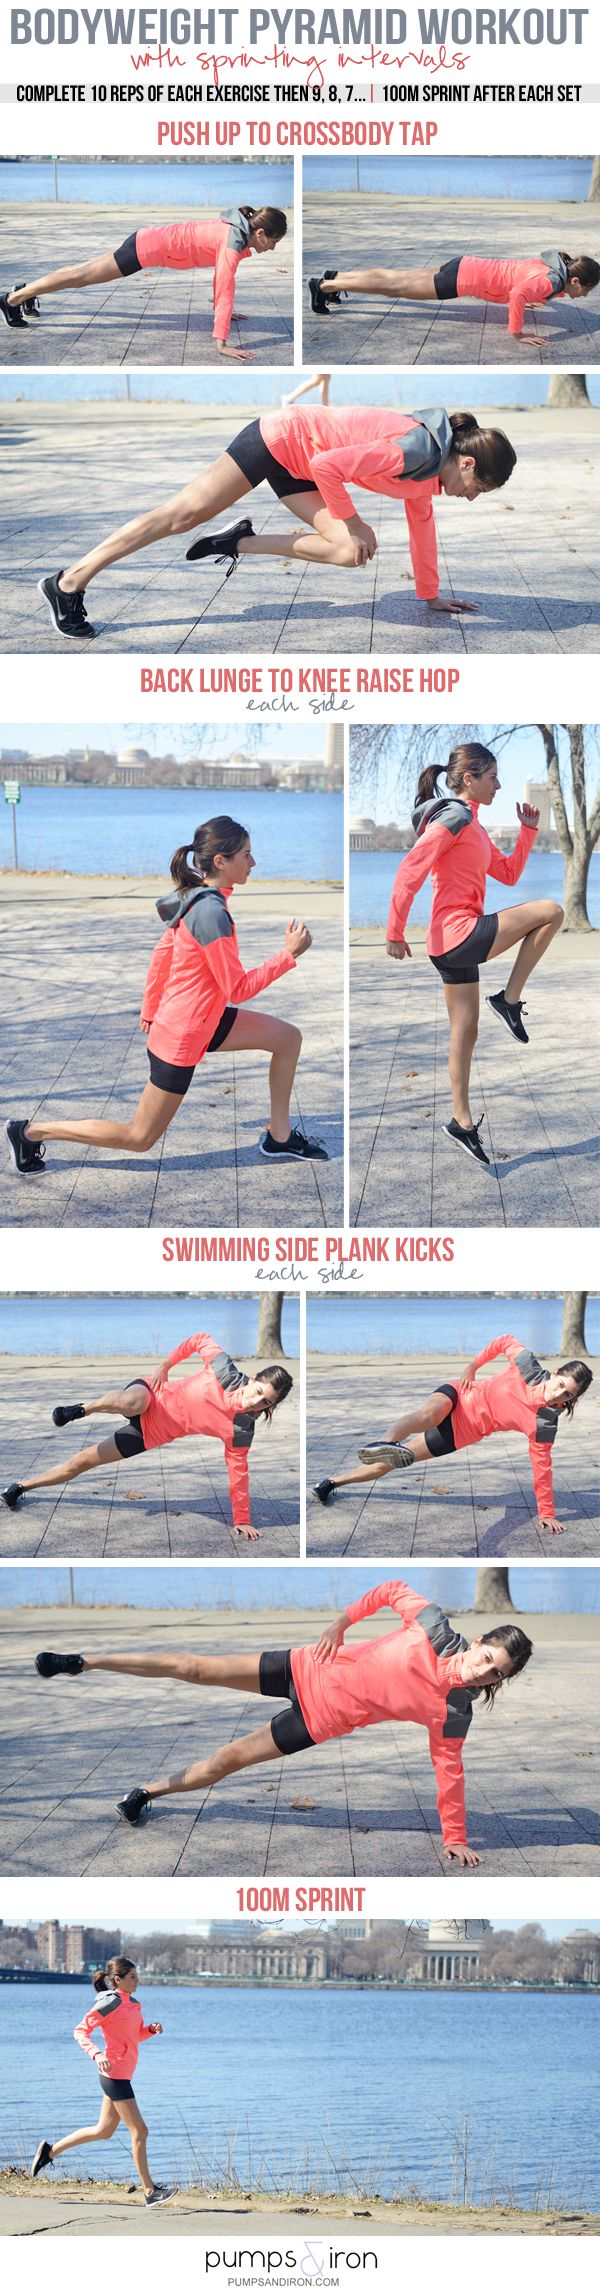 Bodyweight Pyramid Workout with Sprints - perfect workout for the track or treadmill!